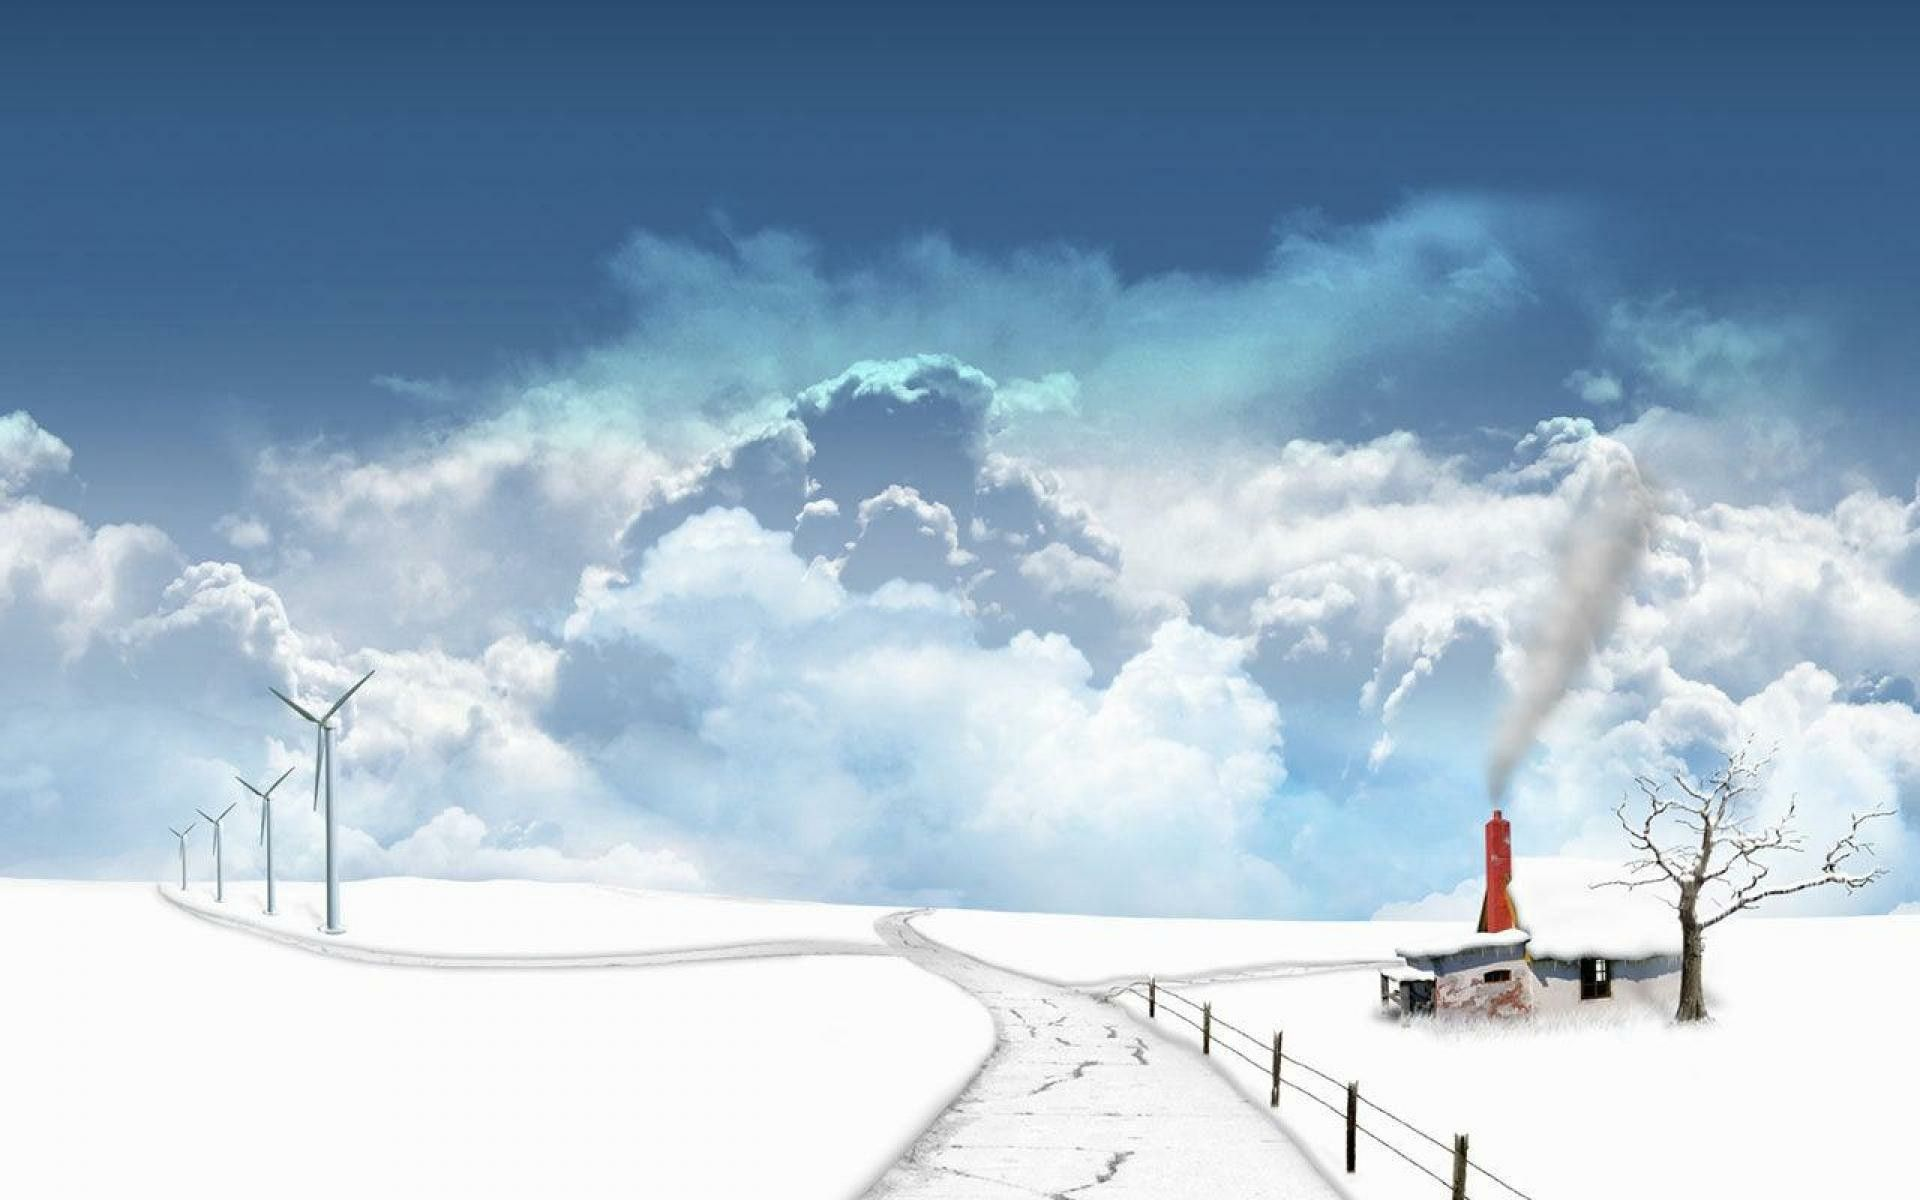 Snow Scenery Anime Wallpapers Top Free Snow Scenery Anime Backgrounds Wallpaperaccess